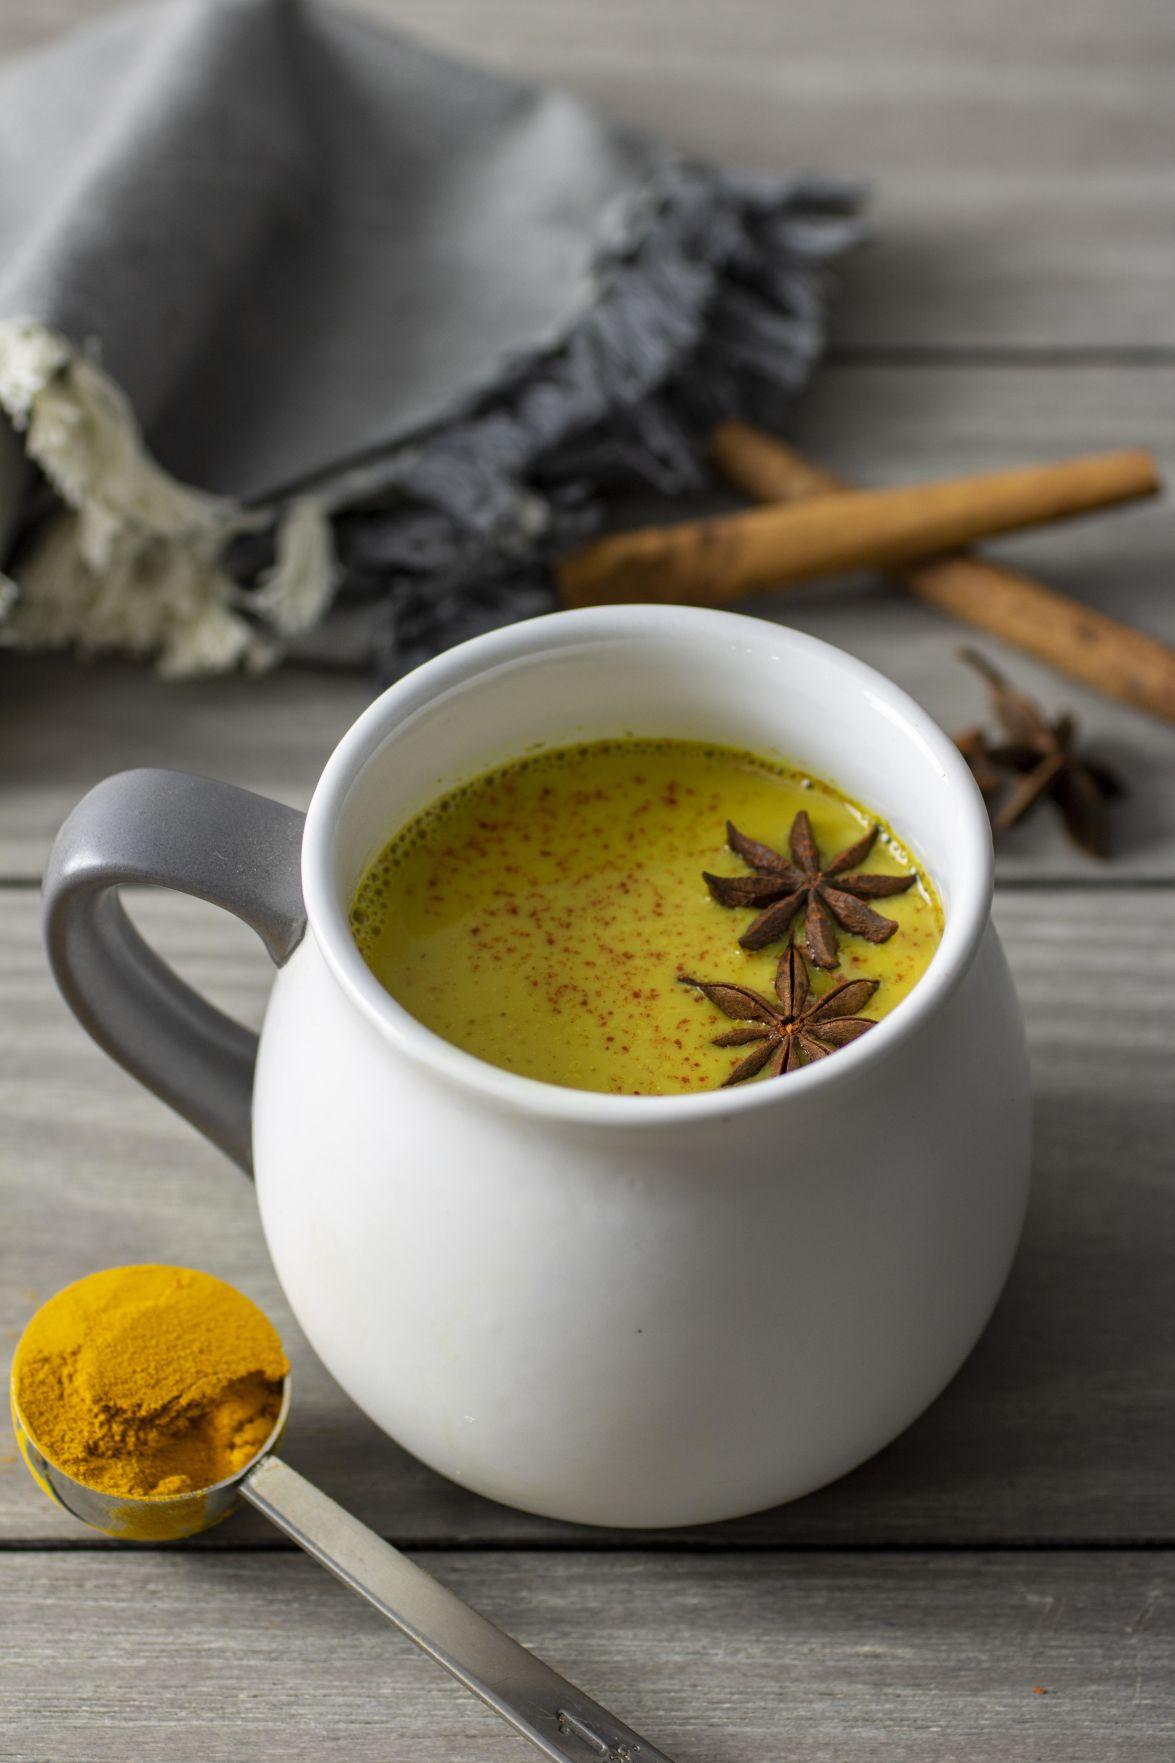 SPICE LADY: Golden Milk, the feel-good drink for the New Year